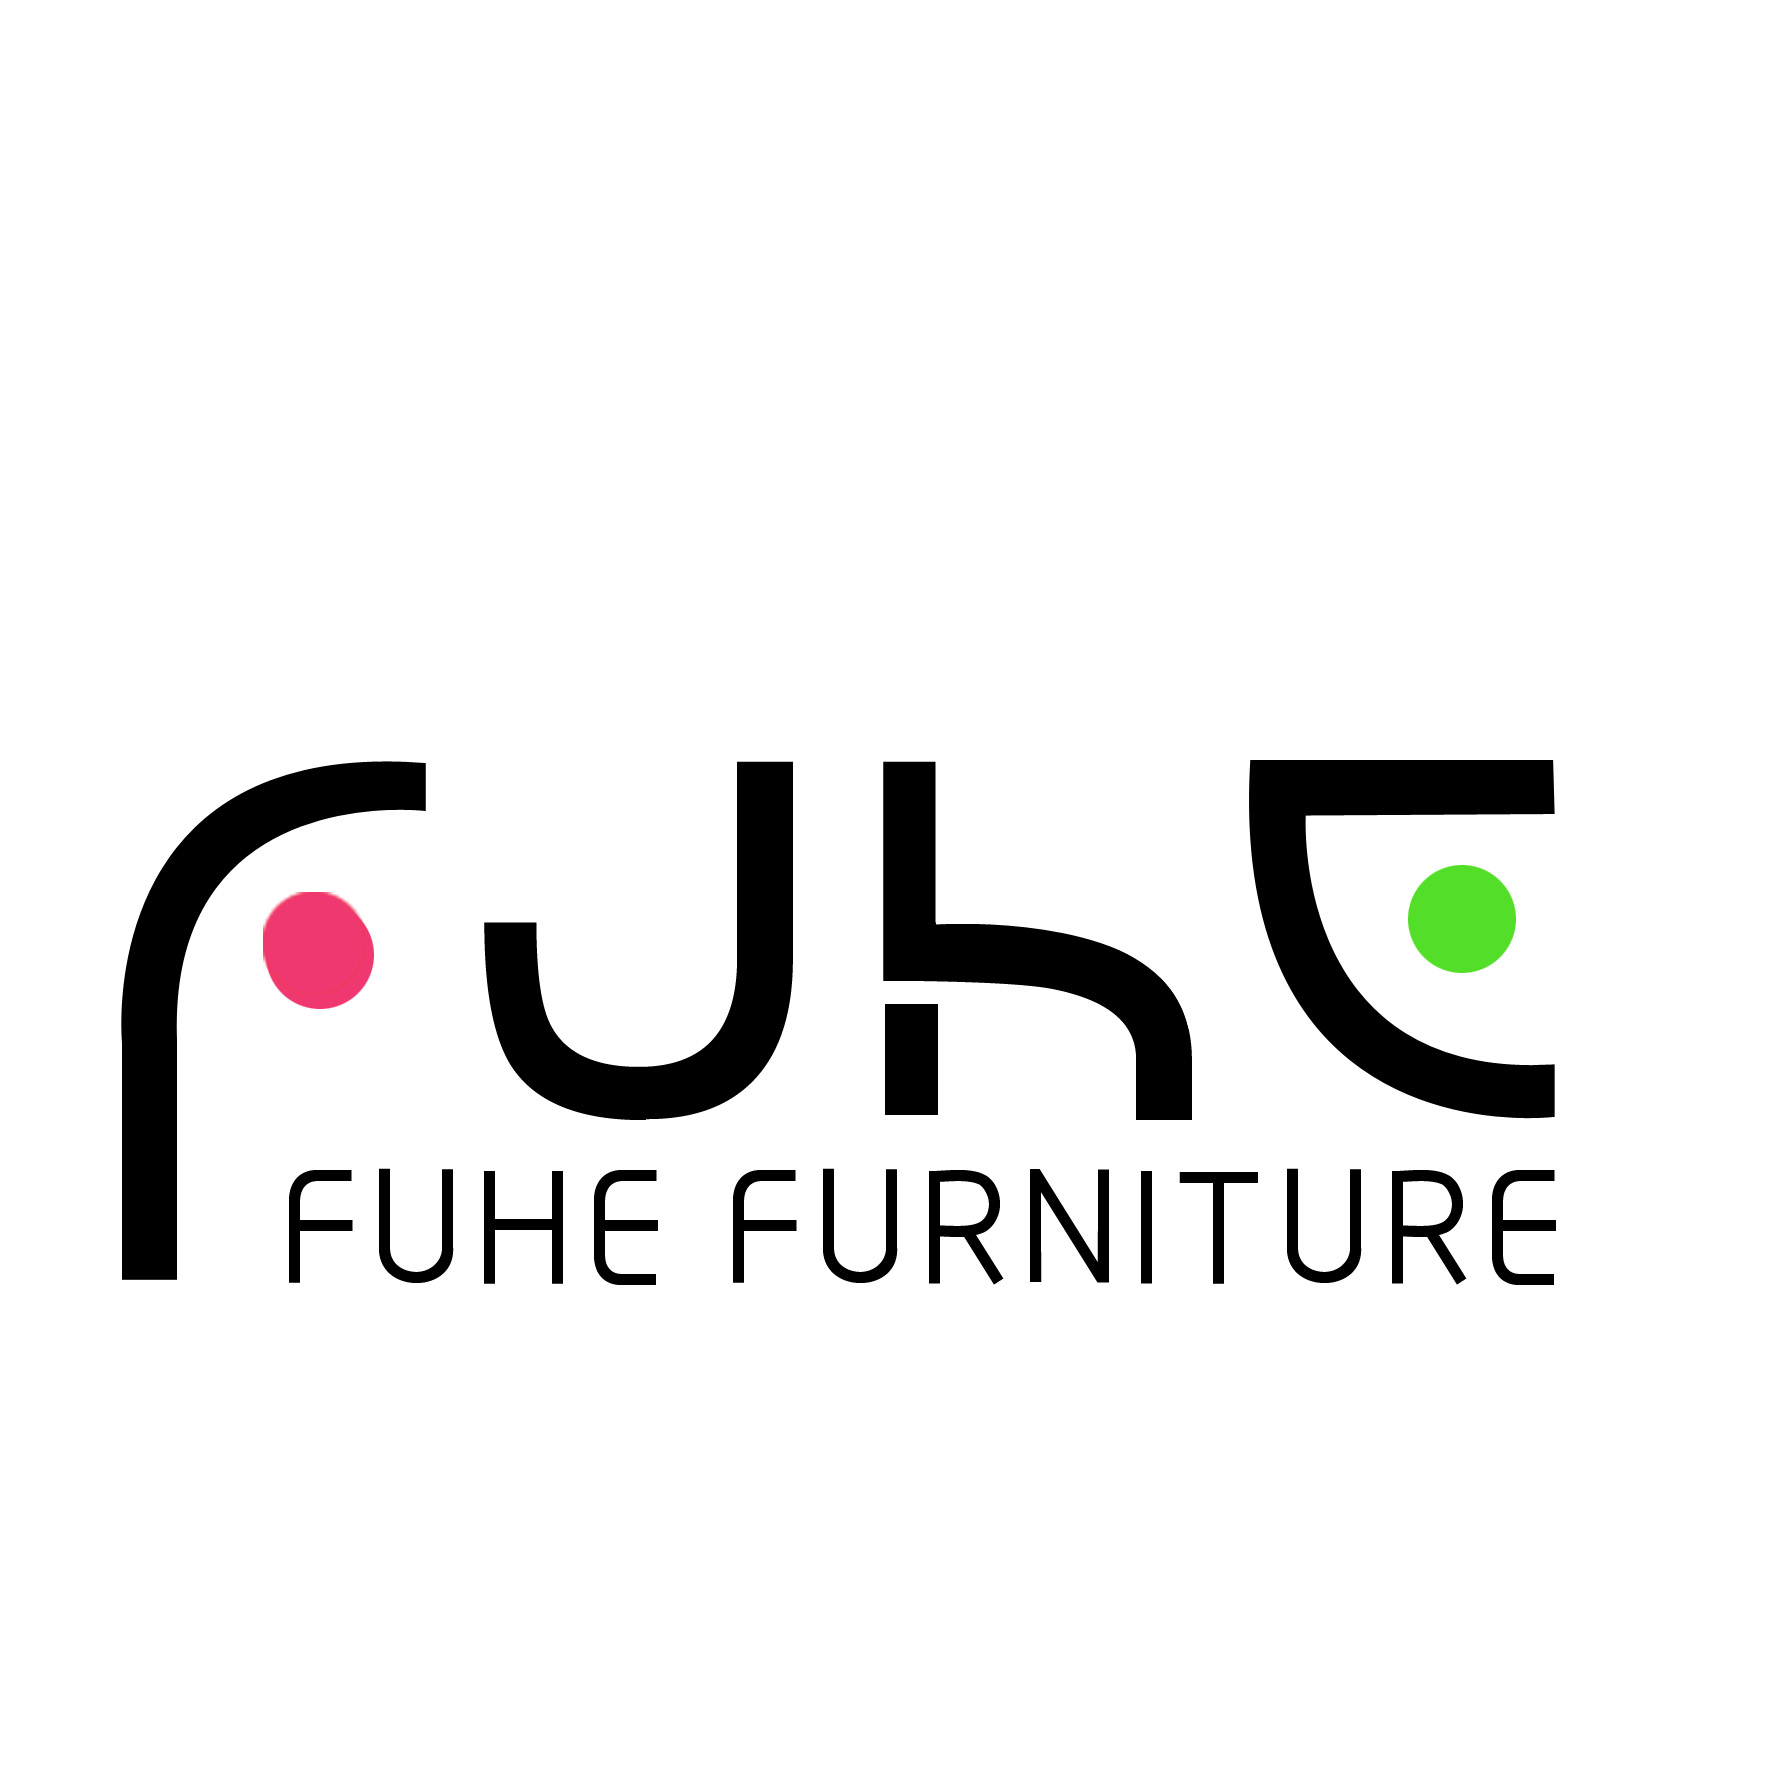 contemporary furniture manufacturers. contemporary furniture manufacturers e